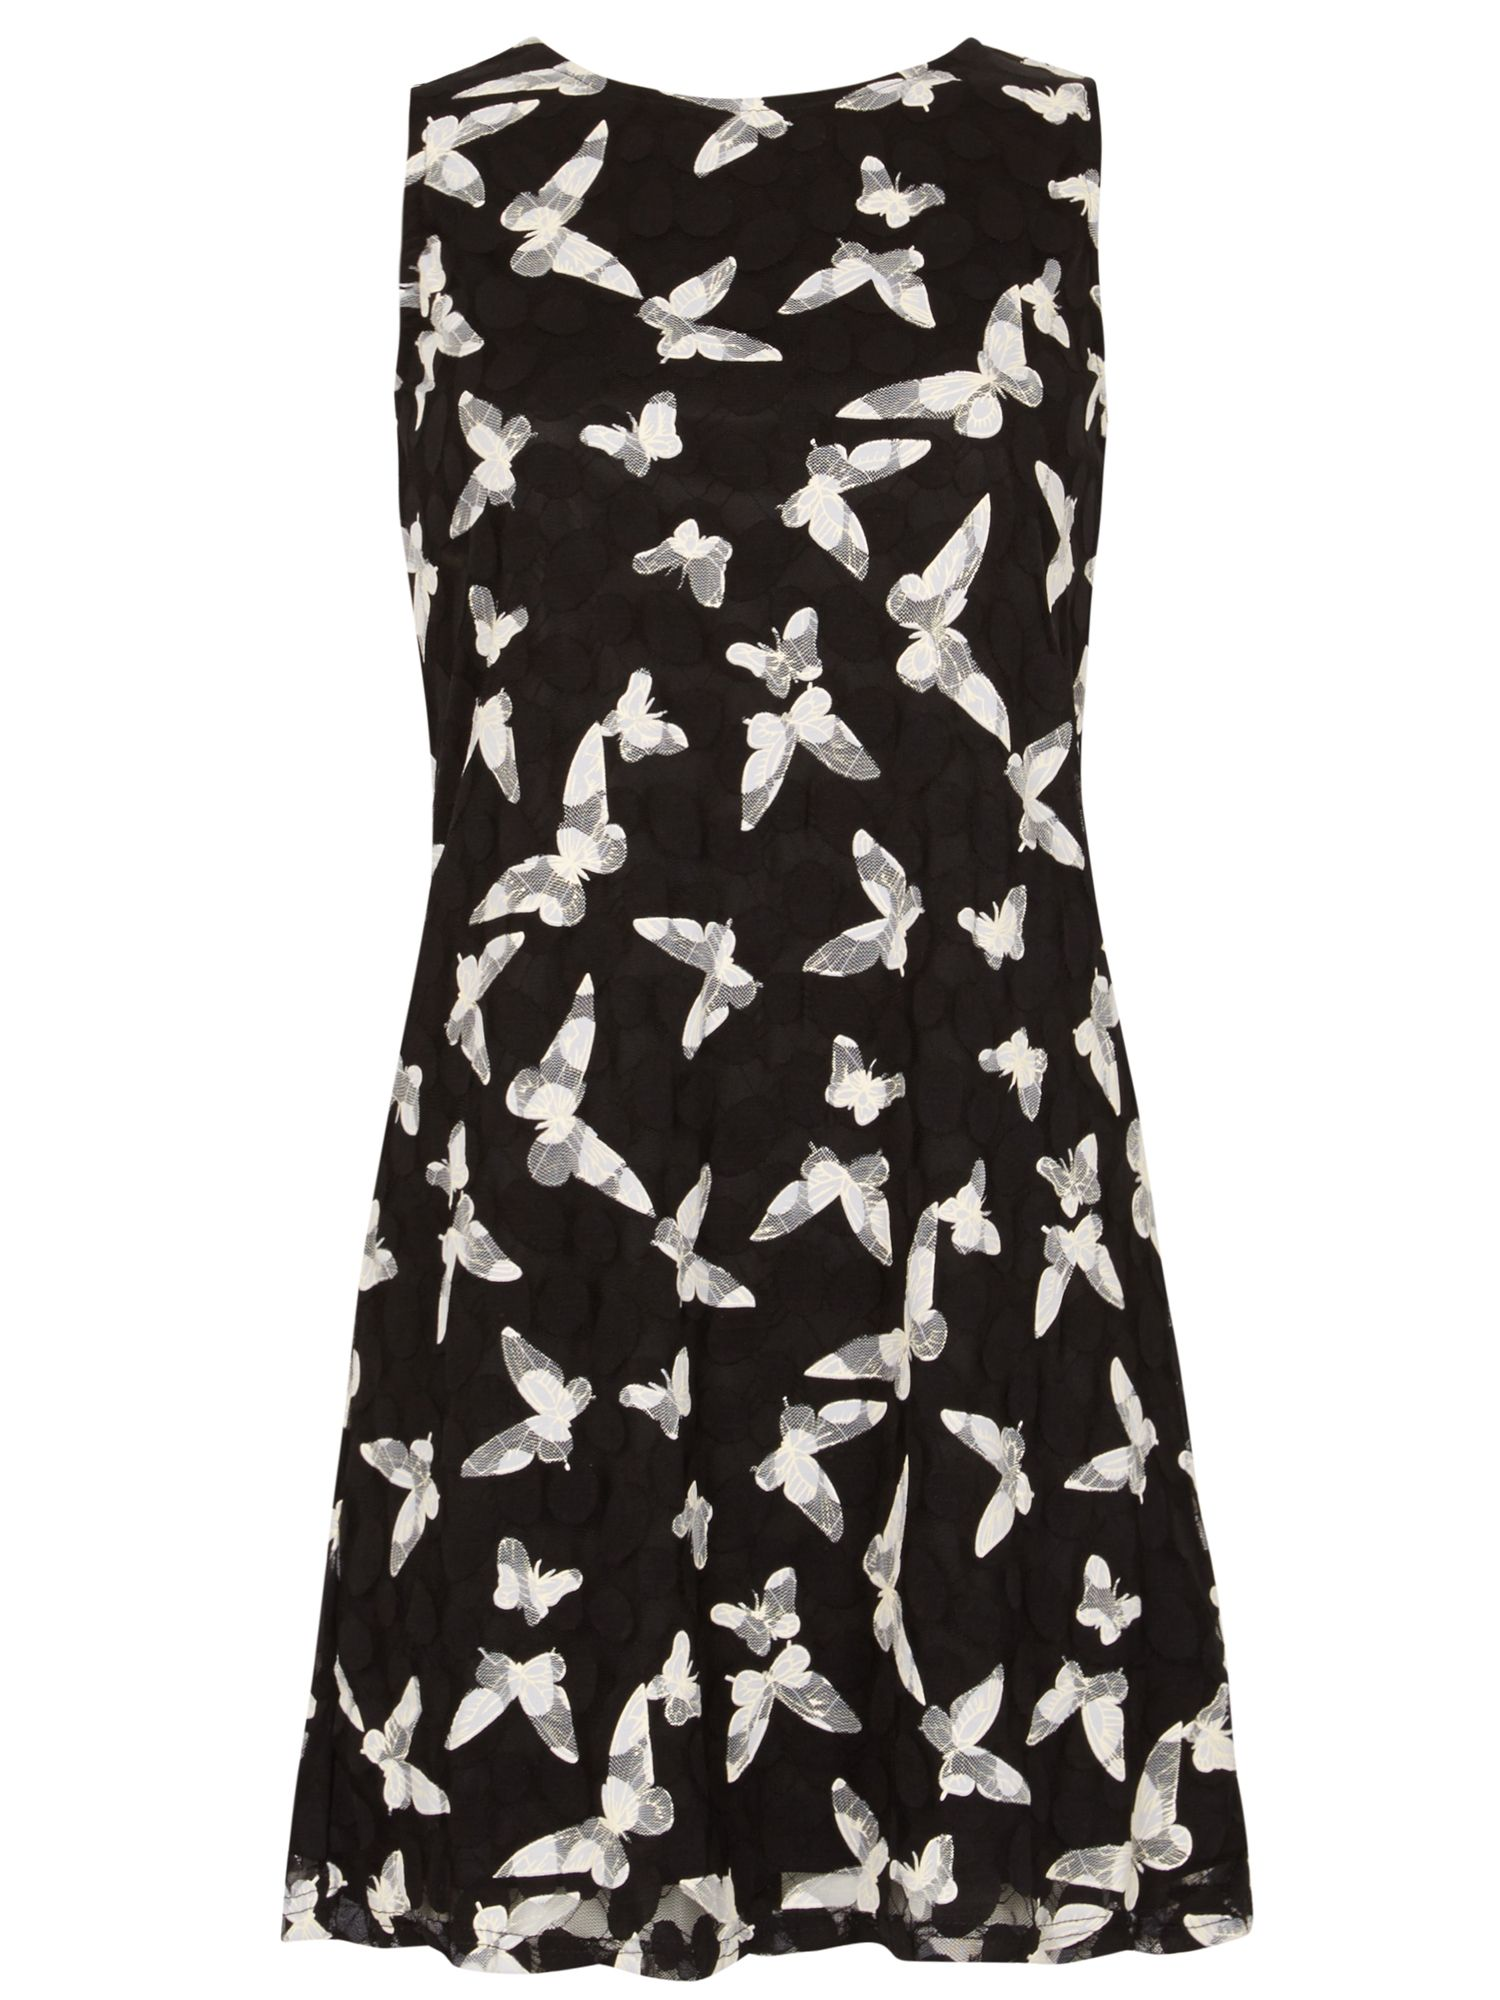 Izabel London Bird Print Lace Dress, Multi-Coloured